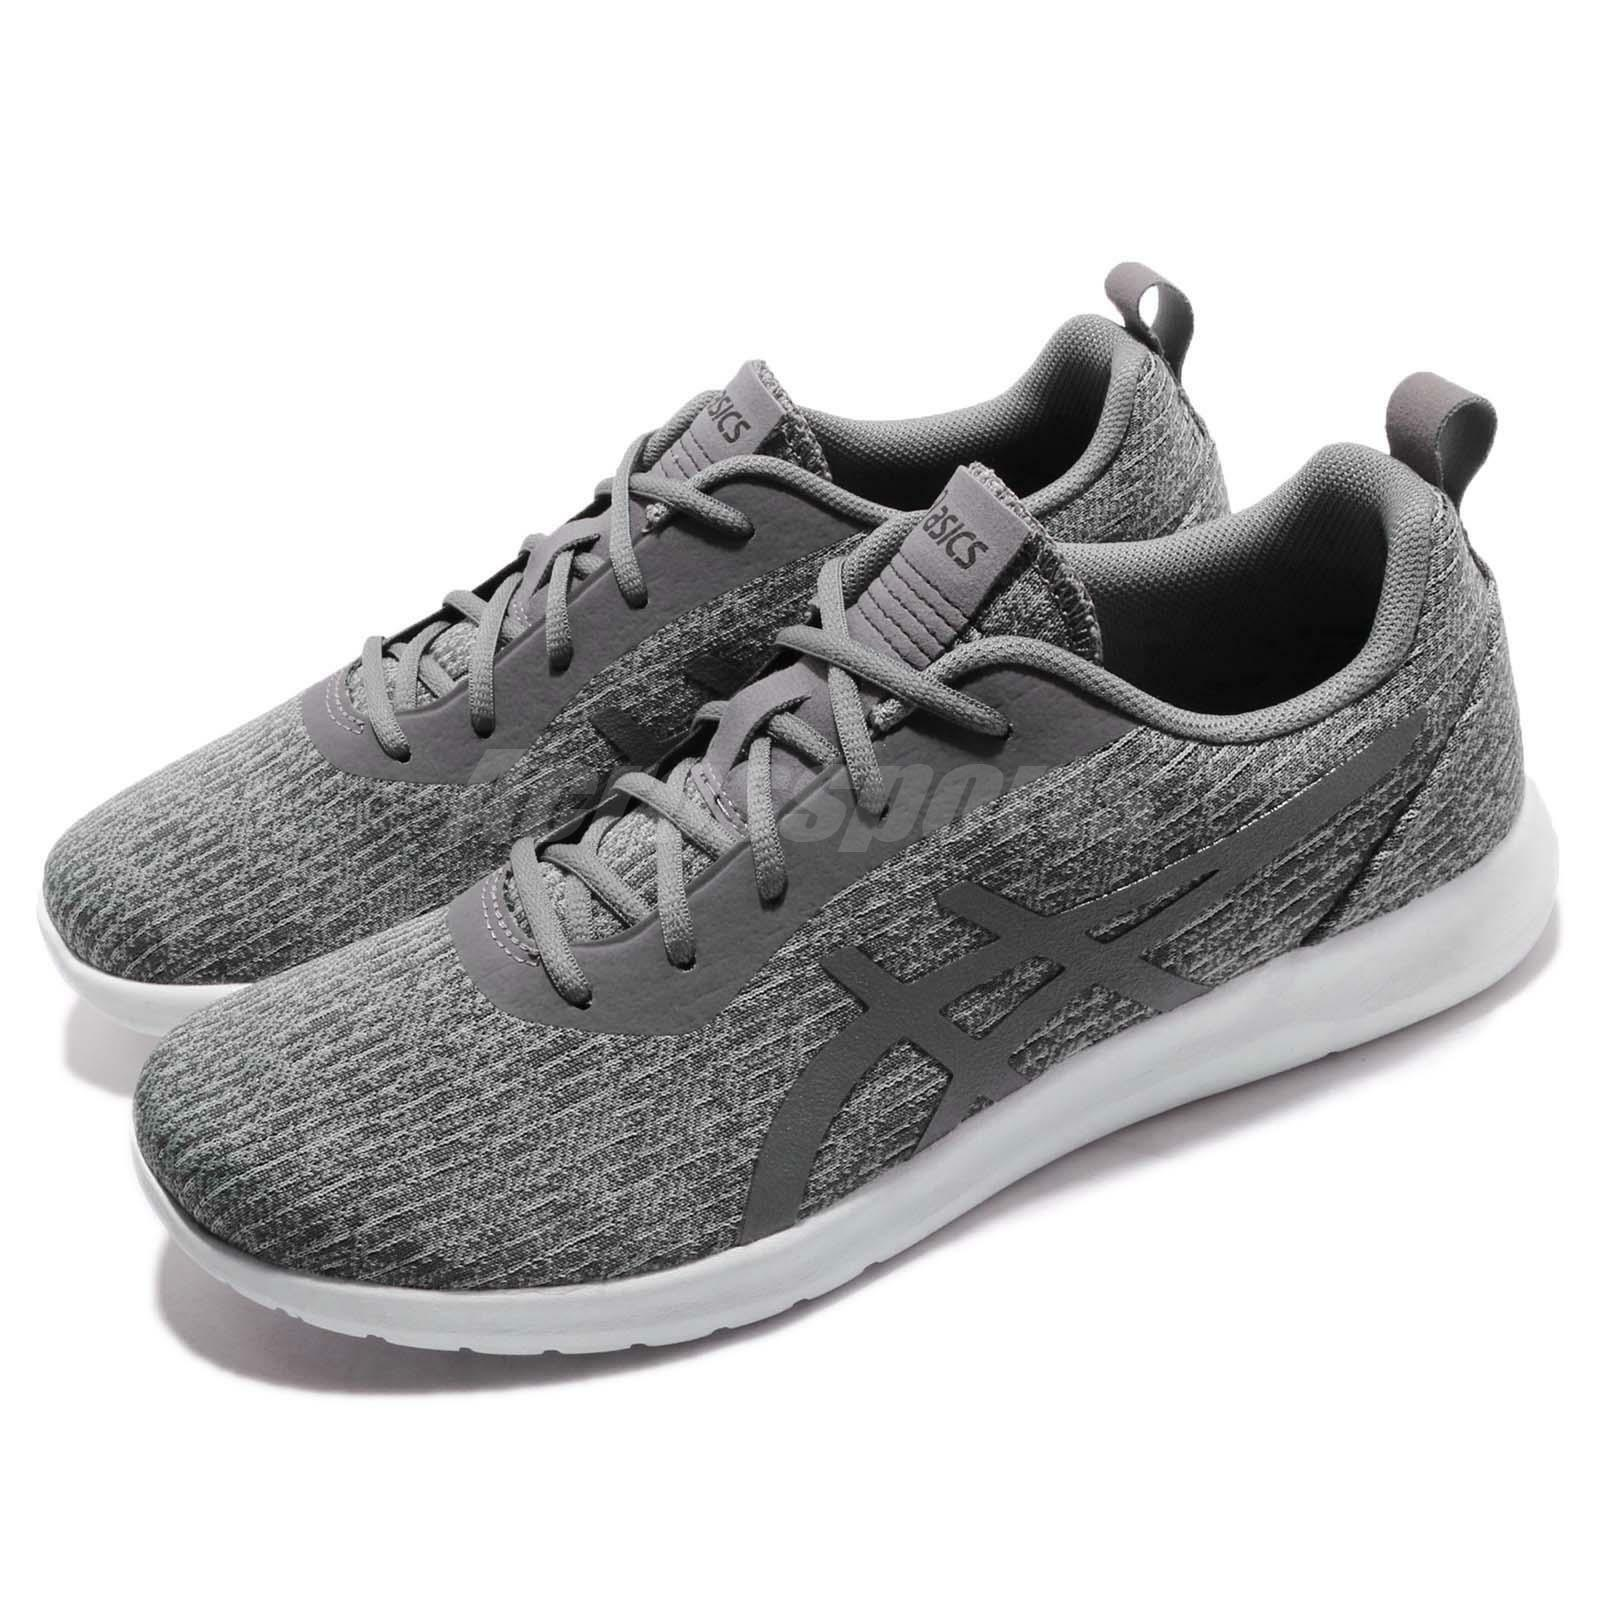 Kanmei Asics Carbon White 2 Shoes Running 020 Grey 1021a011 S gvqvrdw